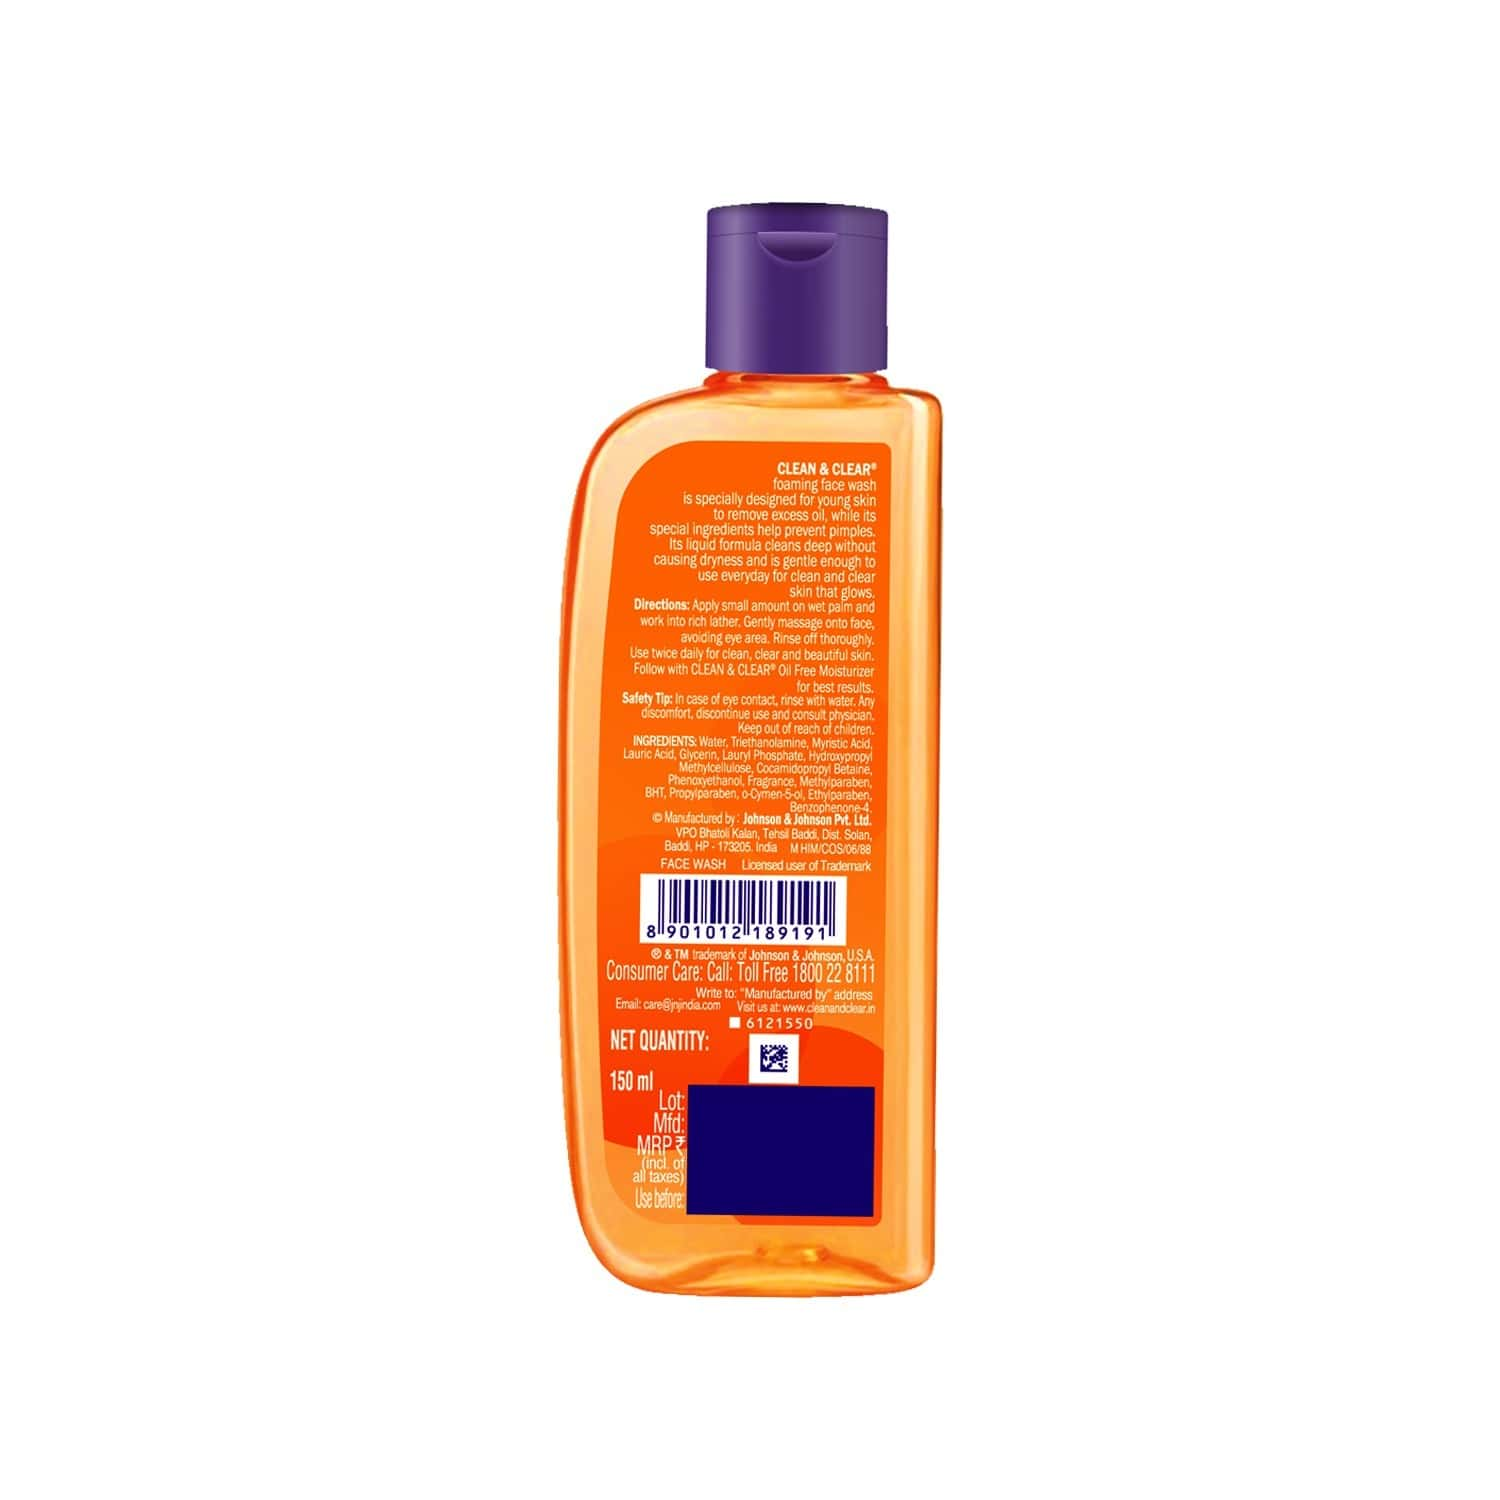 Clean & Clear Foaming Face Wash - 150ml